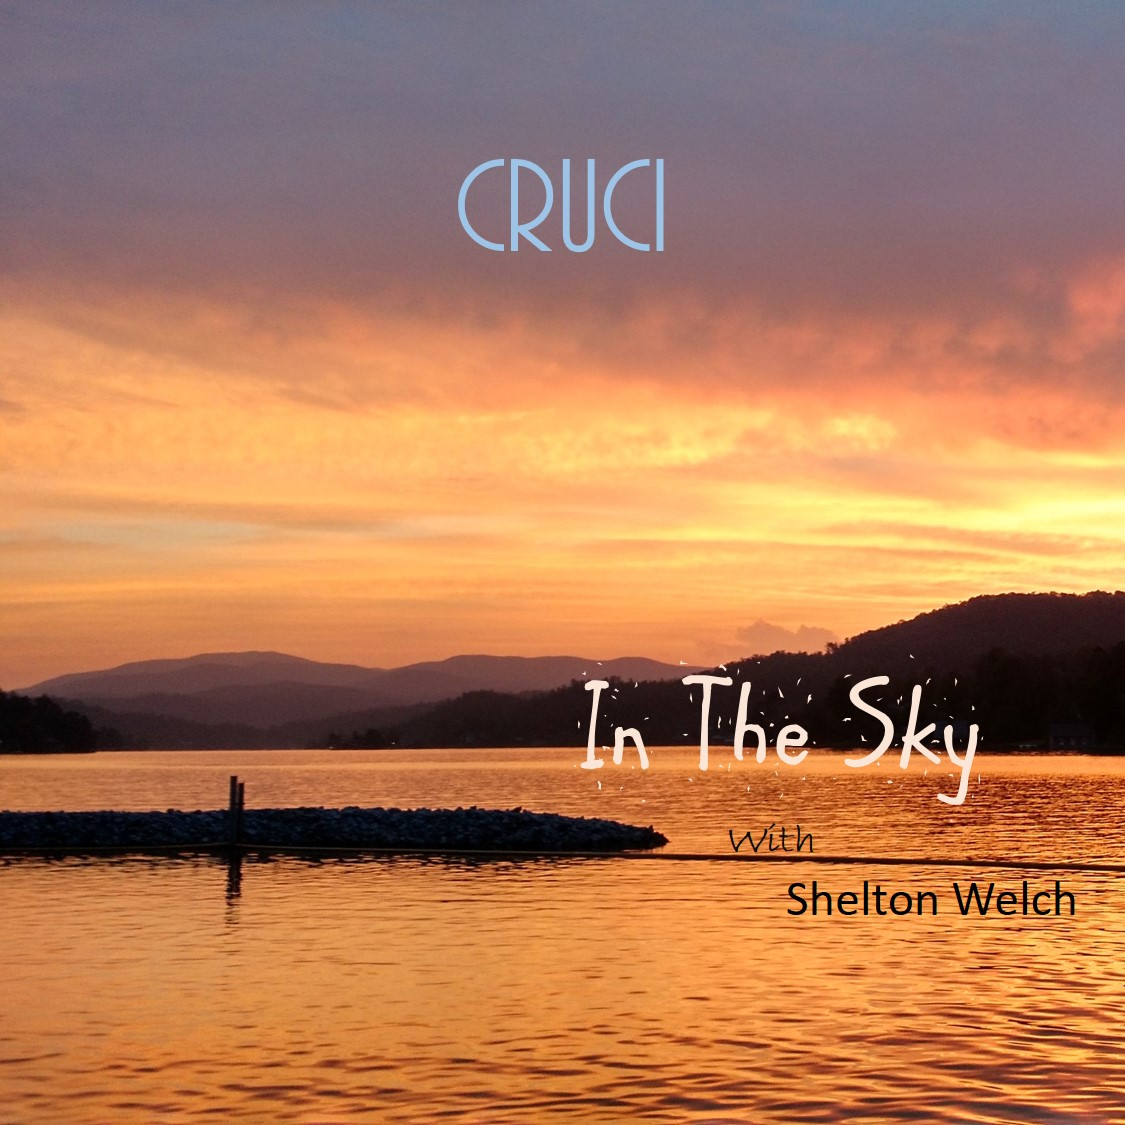 In The Sky (Single) by Cruci